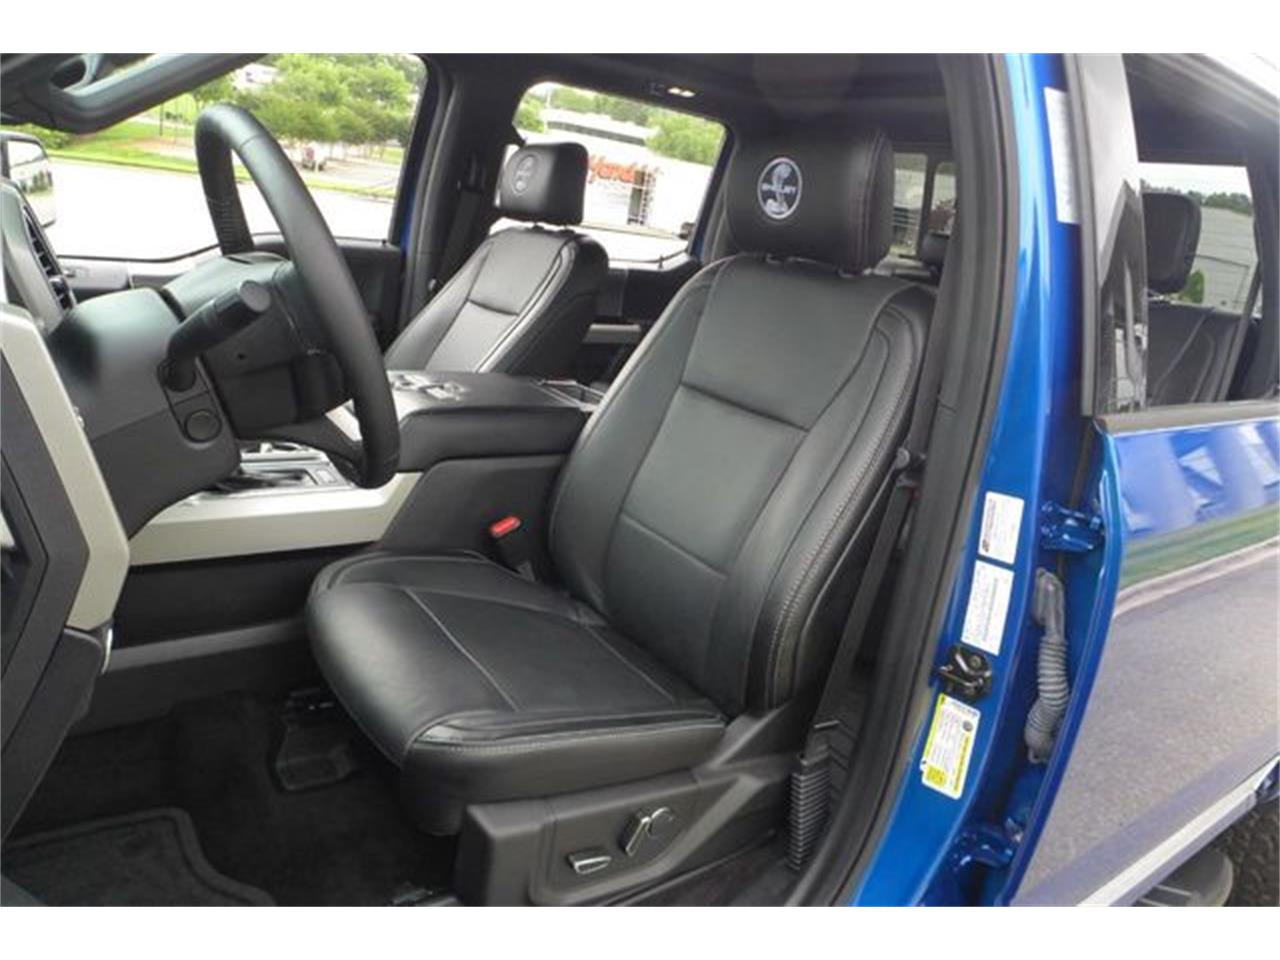 2017 Ford F150 (CC-1361958) for sale in Charlotte, North Carolina